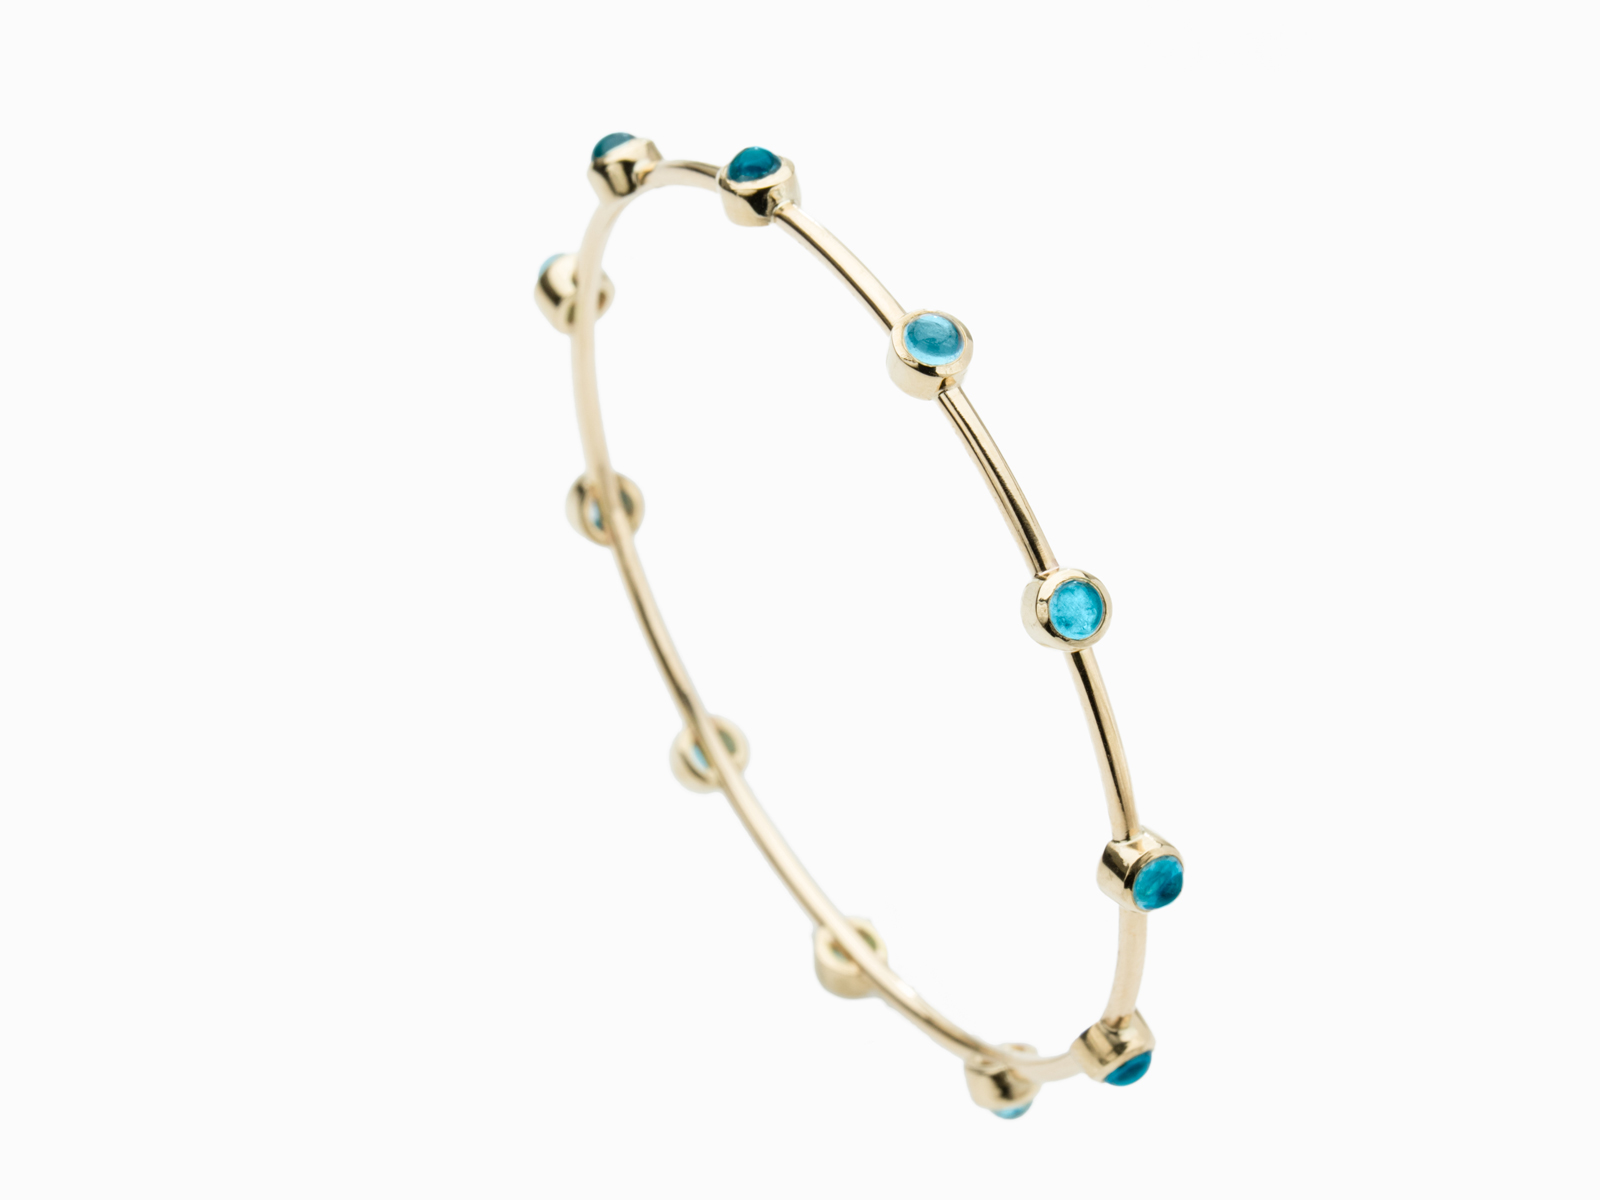 18k Gold Blue Topaz Bangle Bracelet